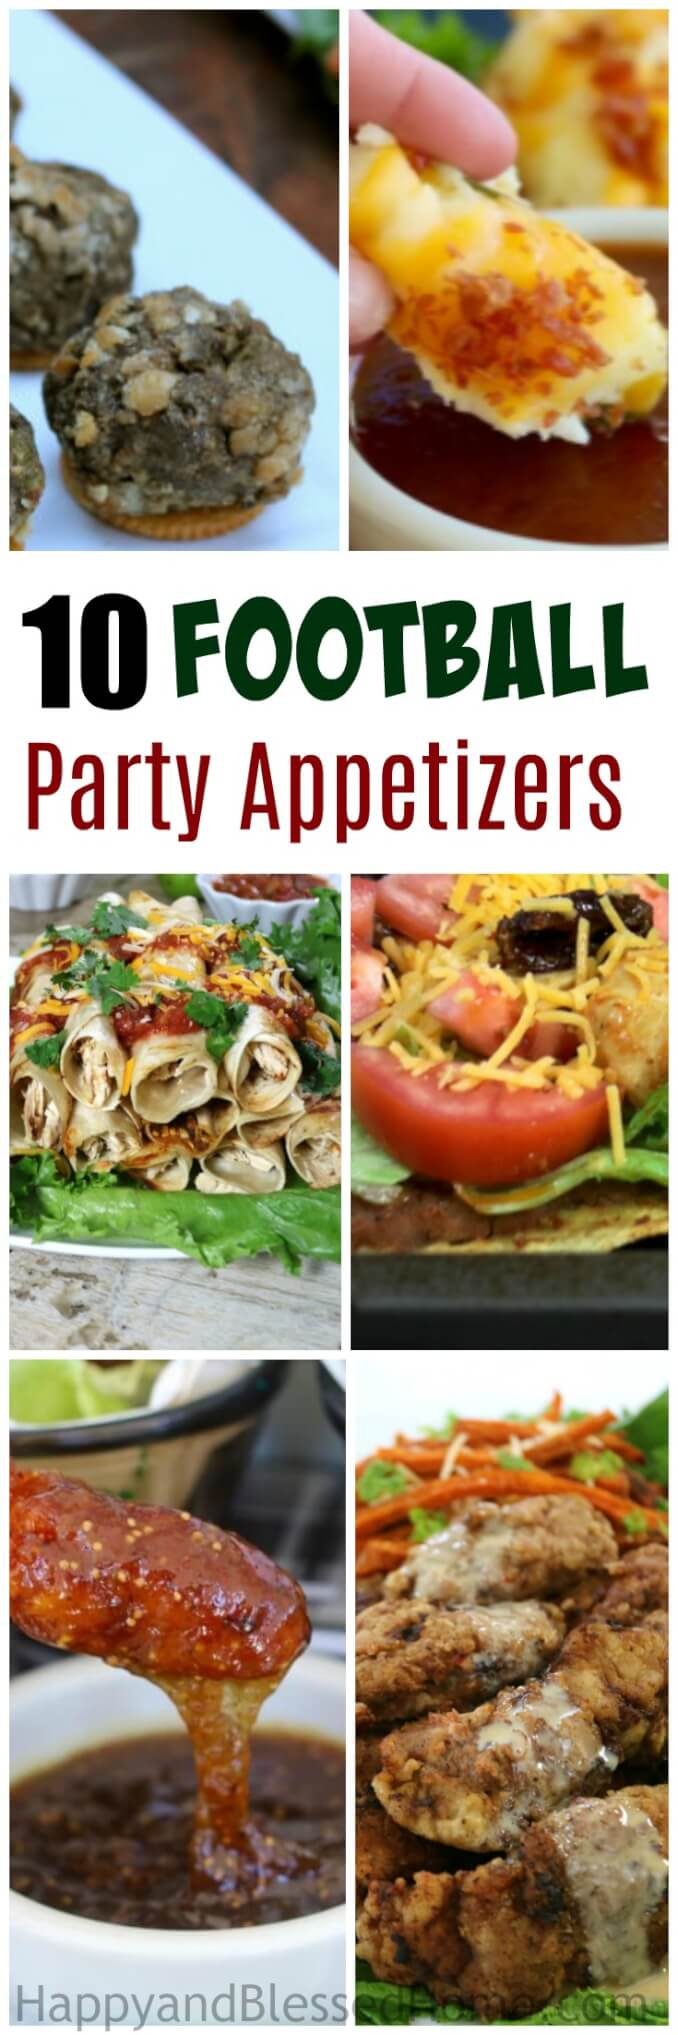 10 Football Party Appetizers including finger foods, dips, sauces and chocolate football pops. No wimpy appetizers, just add chips and beverages and you're set! Perfect football party food for the big game. Honestly, great for entertaining no matter the reason.